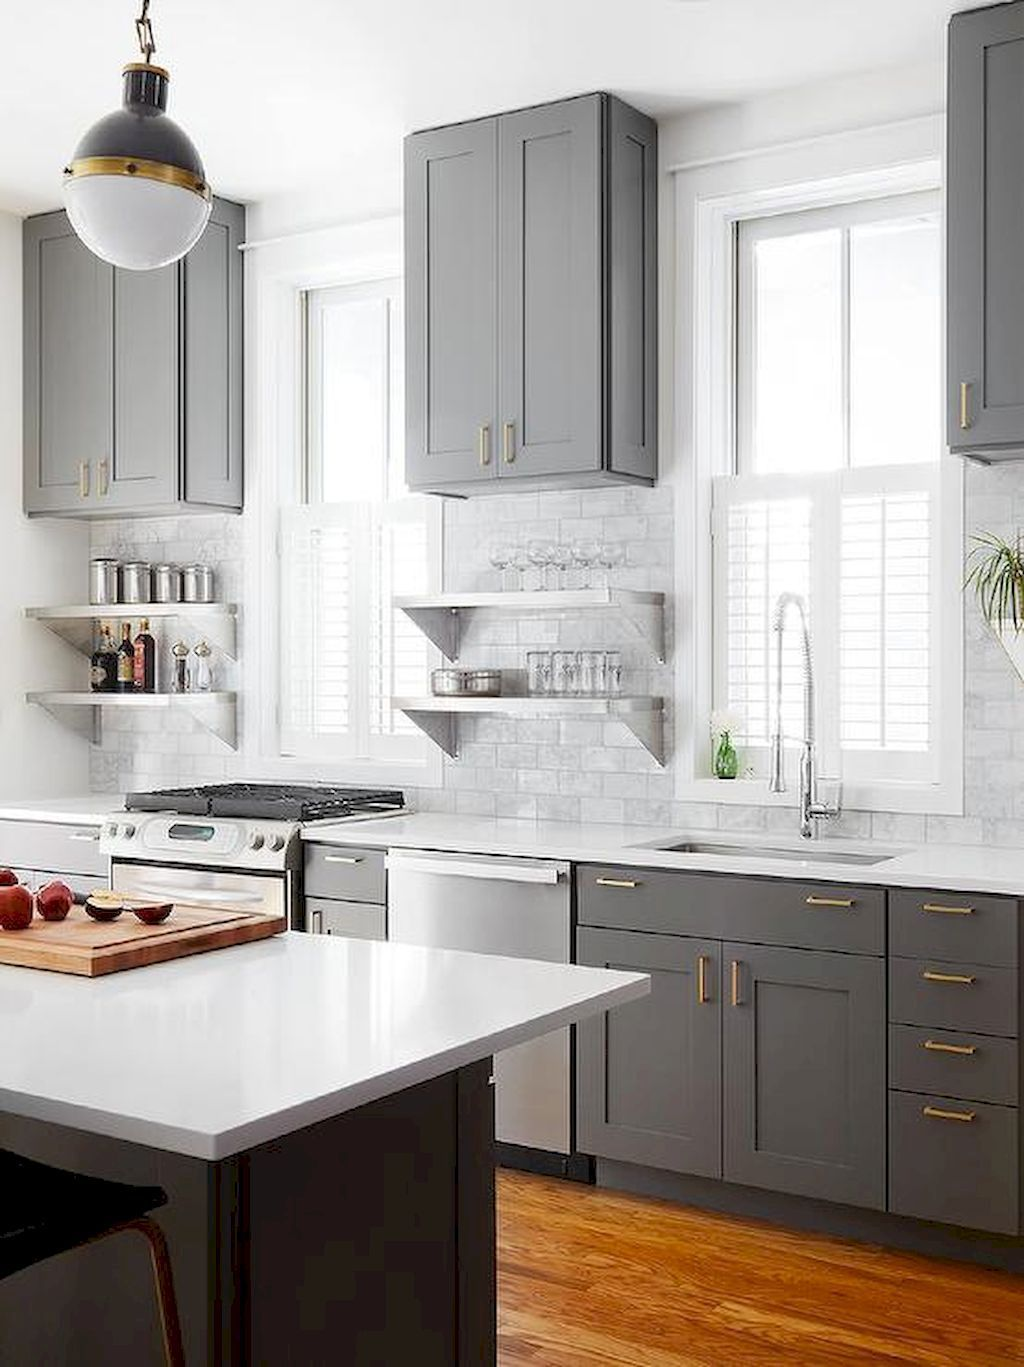 150 gorgeous farmhouse kitchen cabinets makeover ideas 119 kitchencabinet luxurykitchen on farmhouse kitchen cabinets id=51587